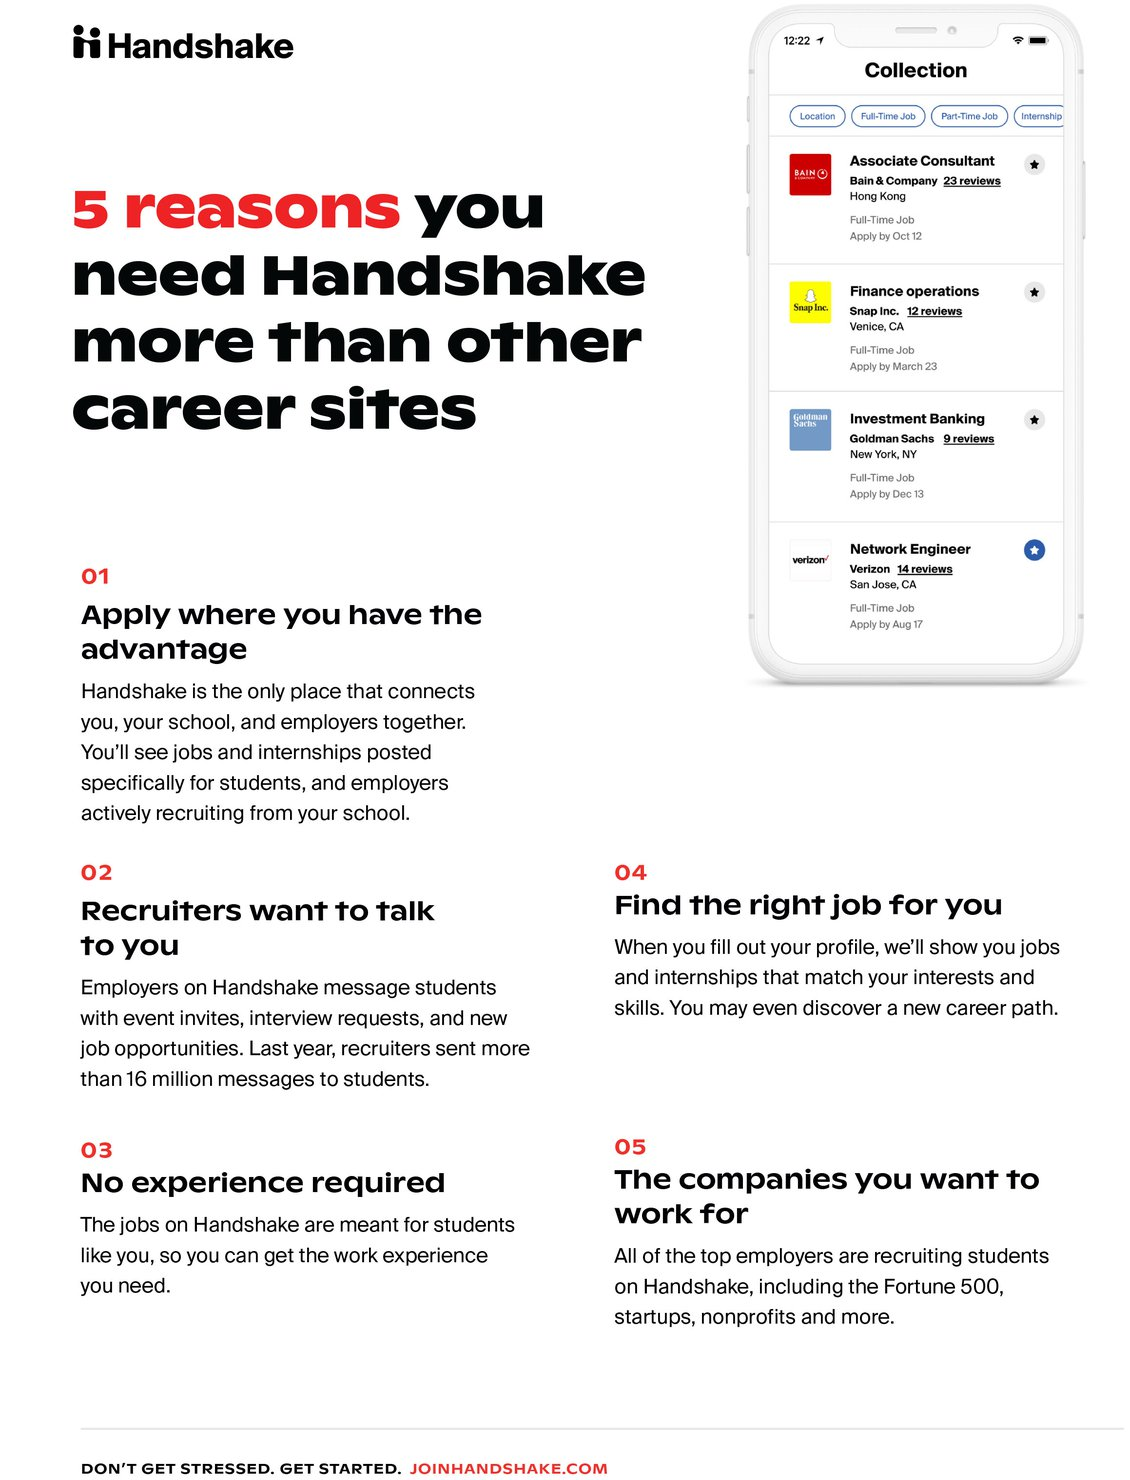 Why-you-need-Handshake-more-than-other-career-sites.jpg